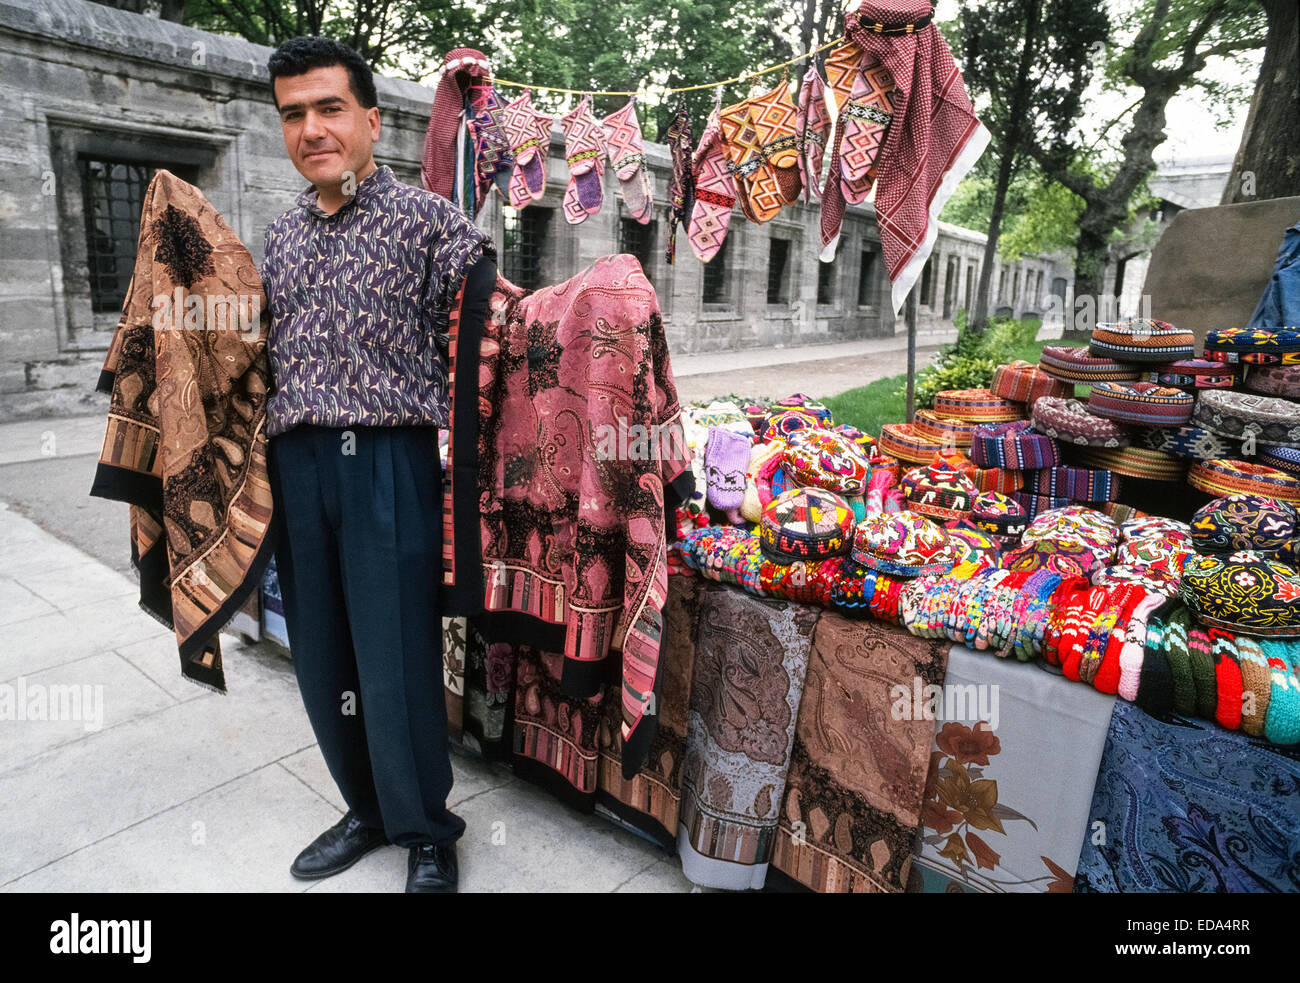 A male vendor displays patterned shawls and very colorful knit caps and woven hats at his outdoor stand in Istanbul, - Stock Image